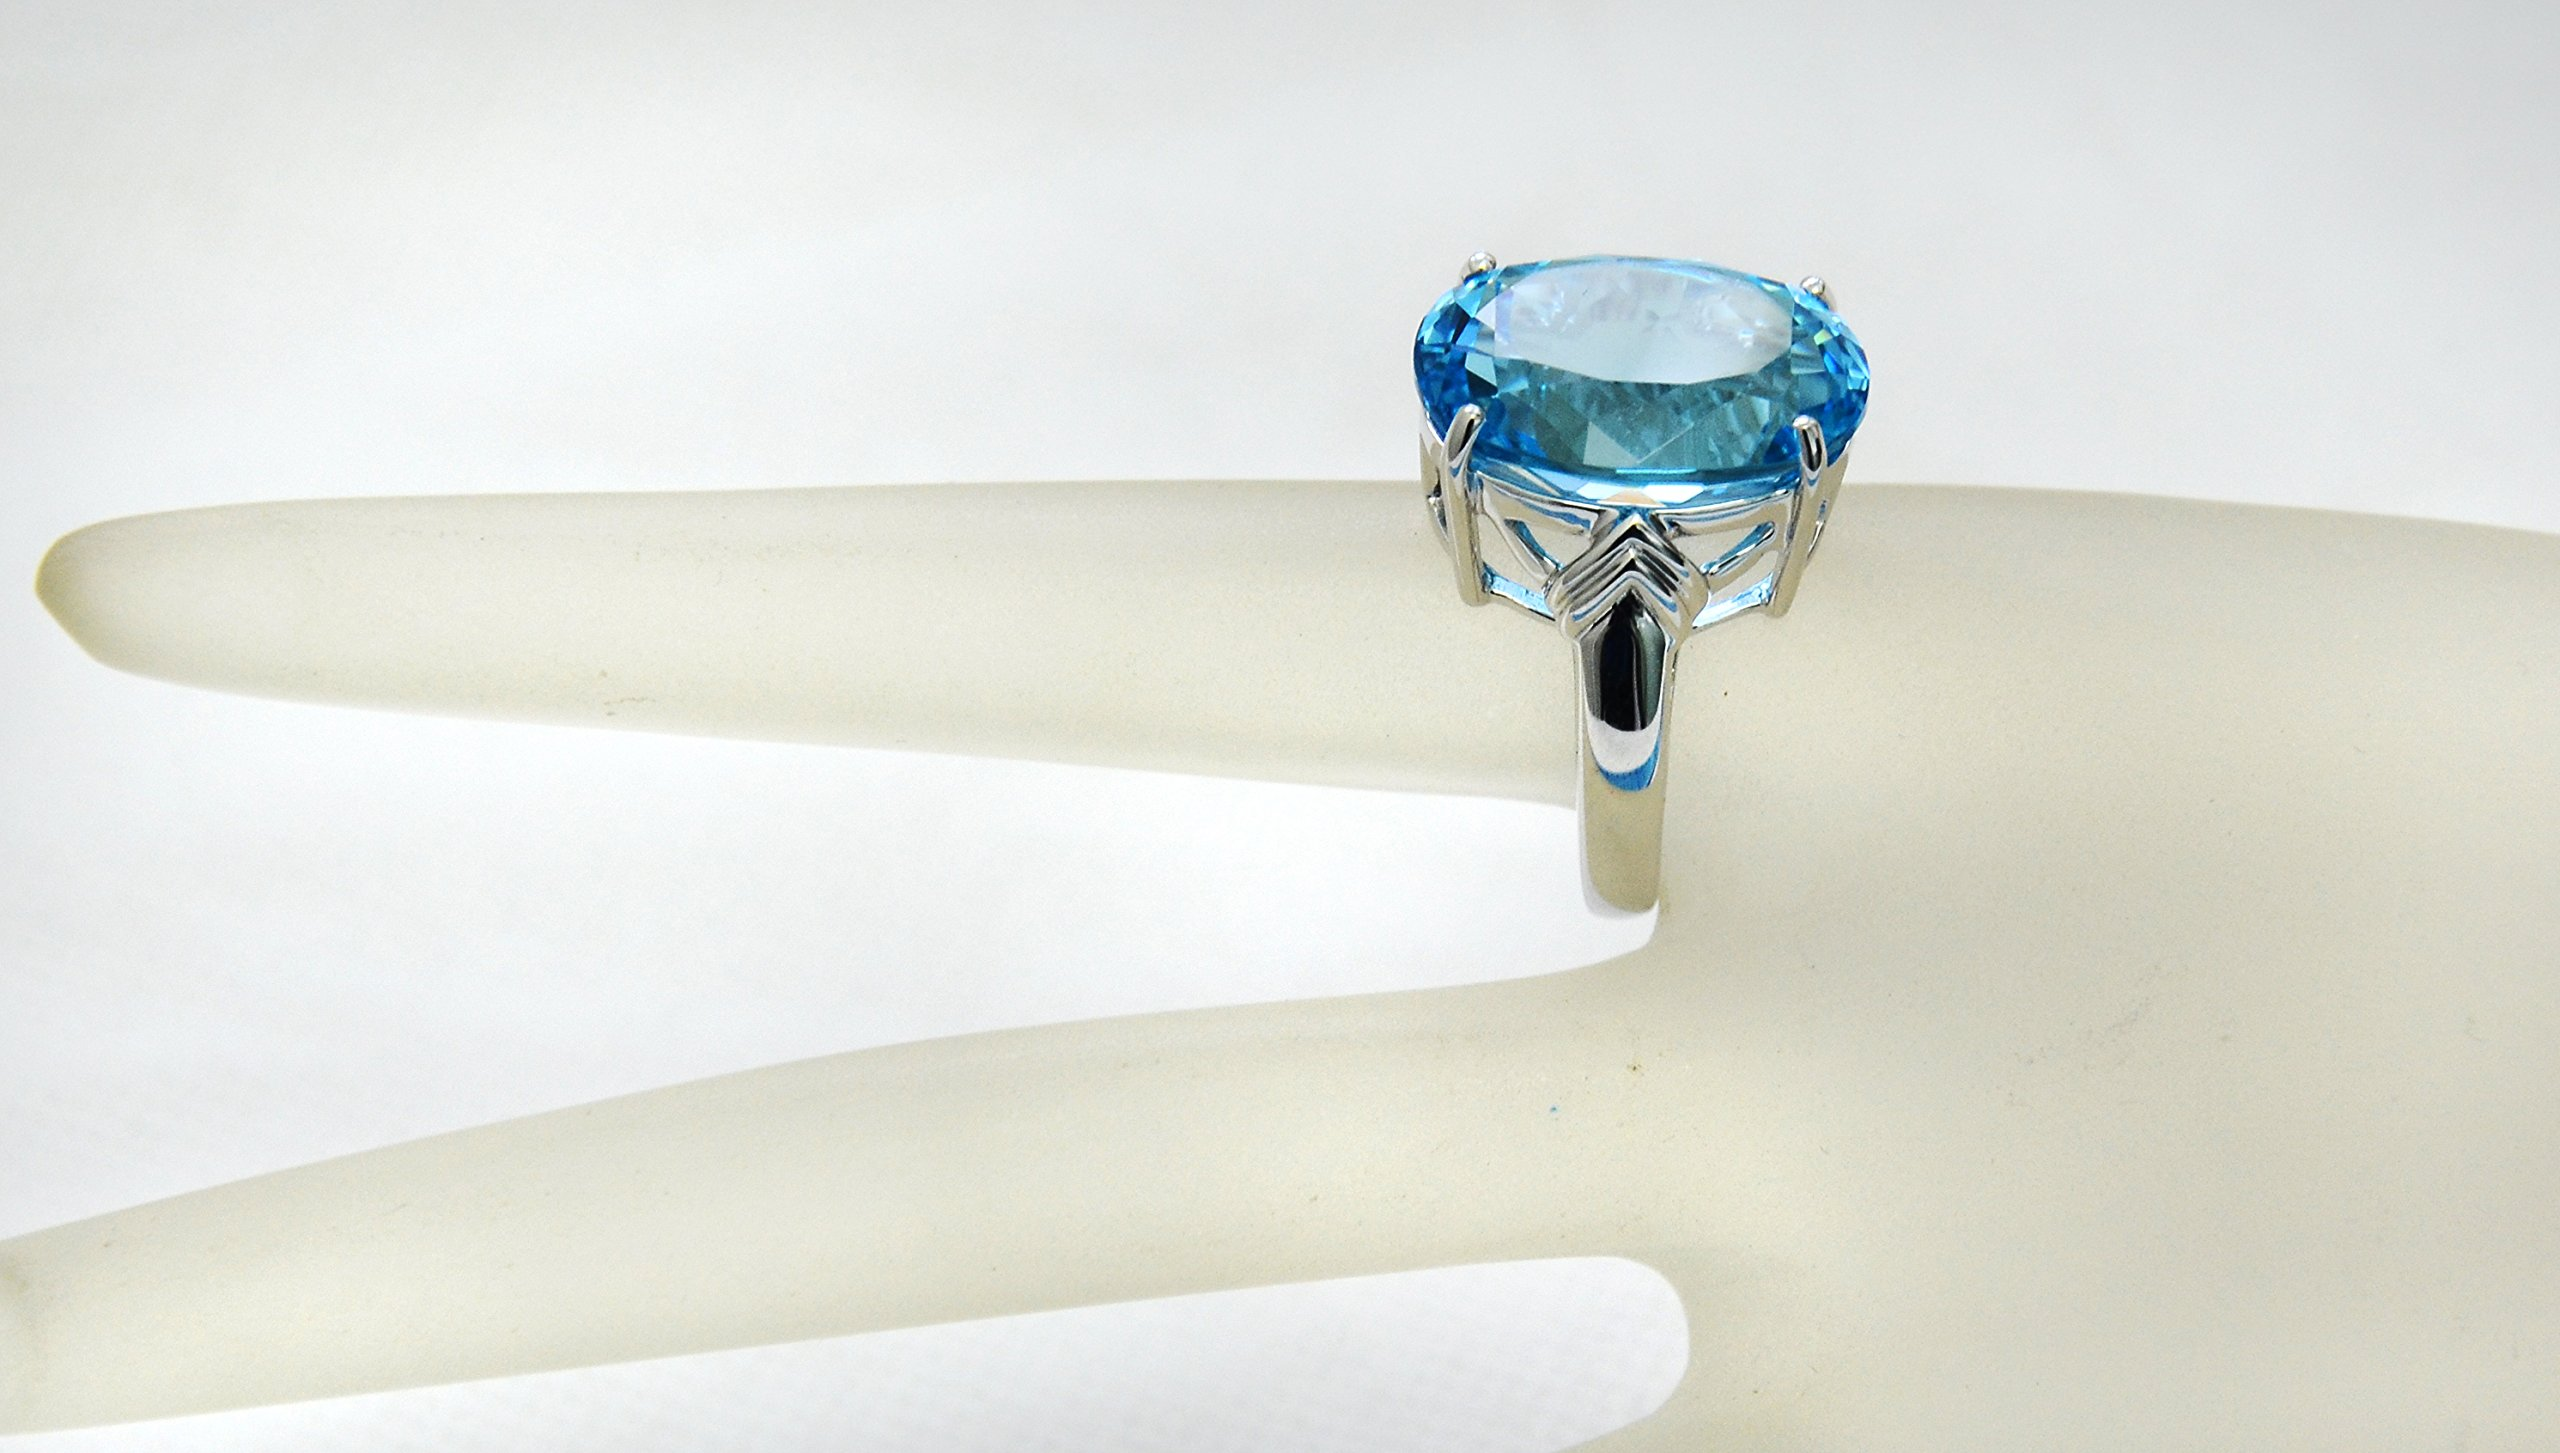 Sterling Silver 925 STATEMENT Ring GENUINE SWISS BLUE TOPAZ 22 Carats with RHODIUM-PLATED Finish (6, swiss-blue-topaz) by RB Gems (Image #2)